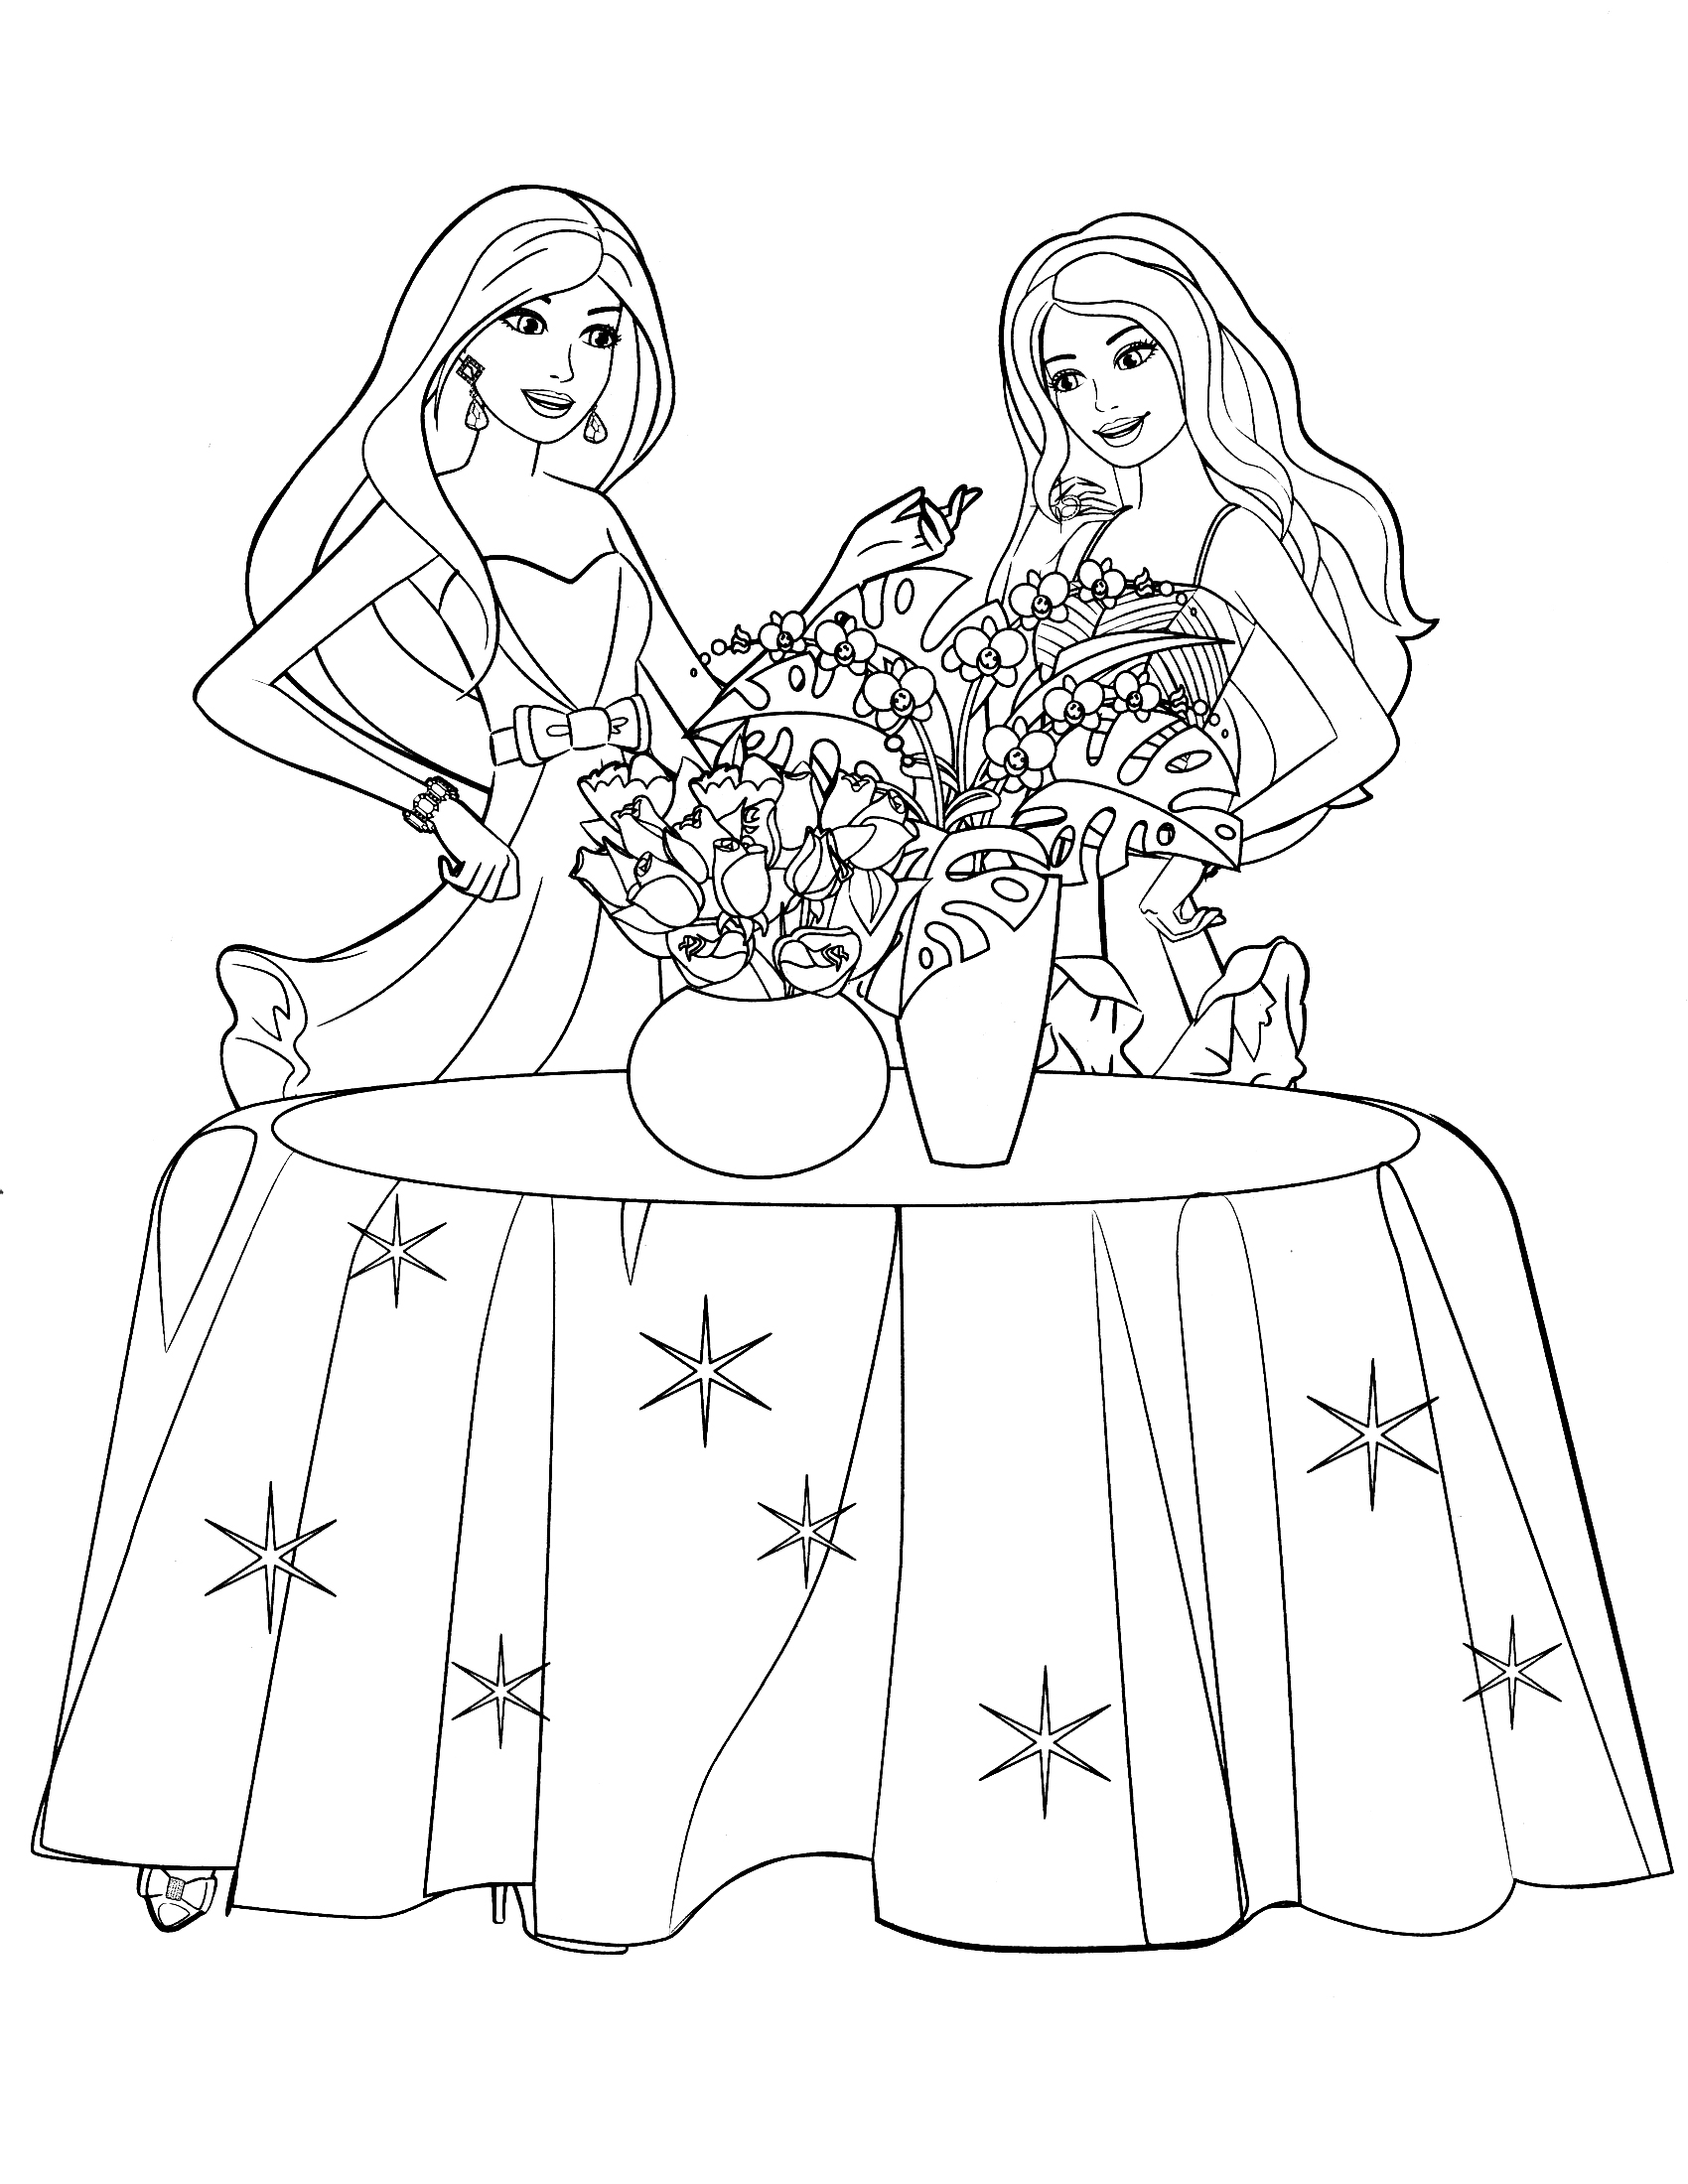 Barbie Coloring Pages | 360ColoringPages